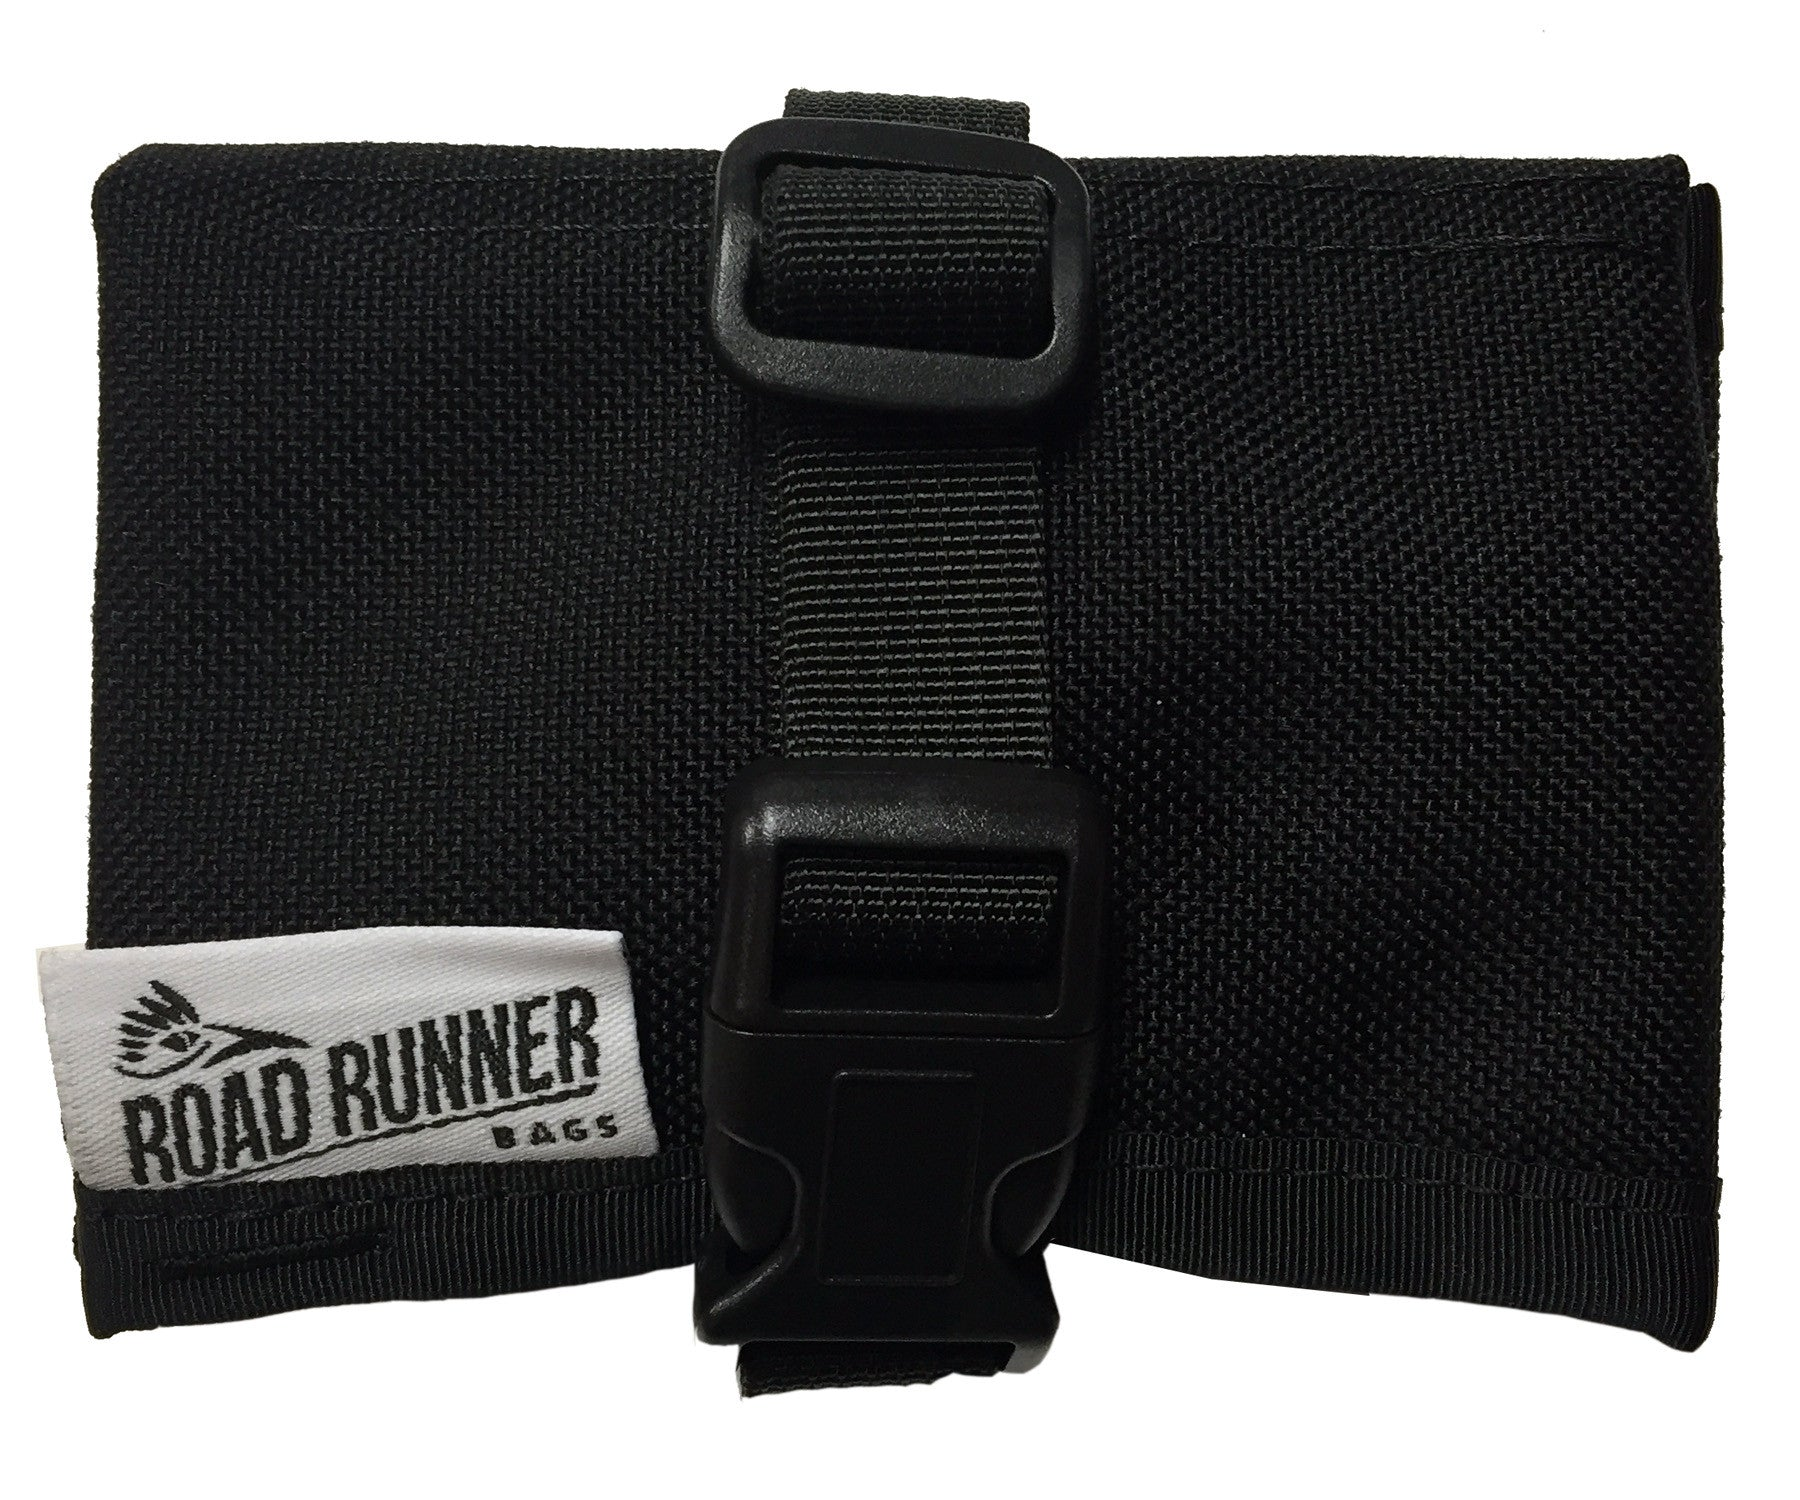 Roadrunner Tool/Saddle roll